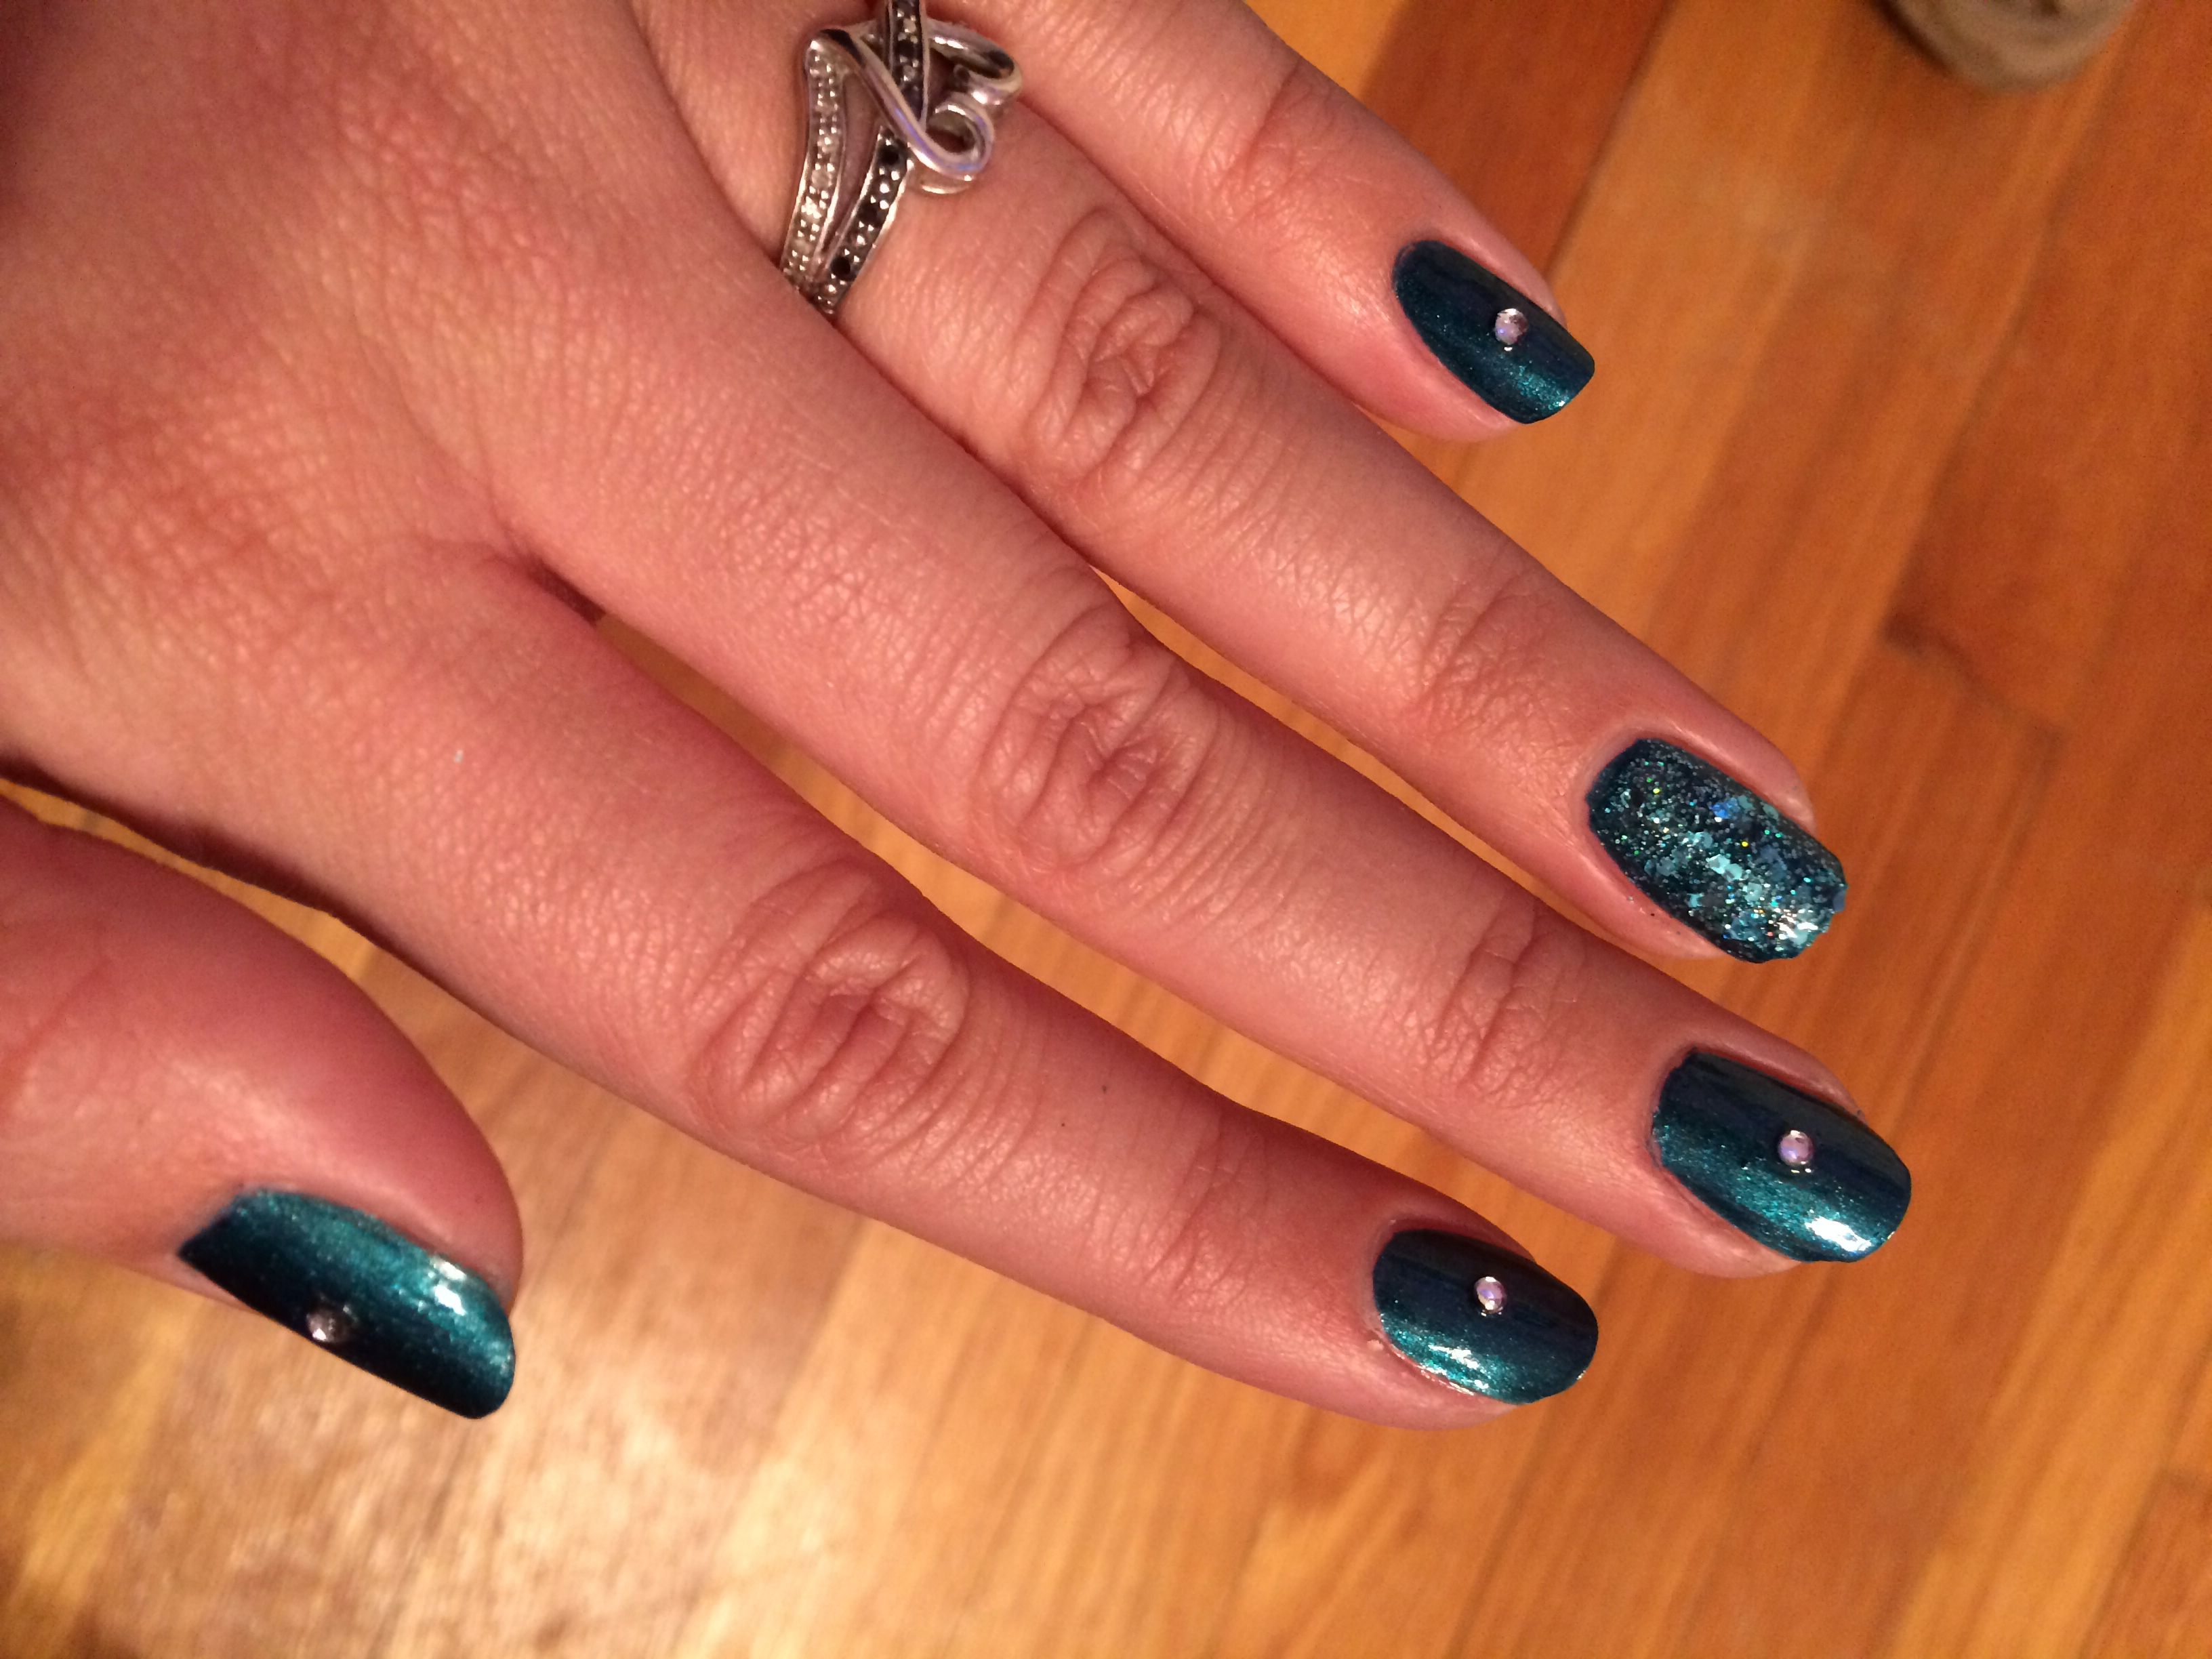 """Sephora OPI """"Teal We Meet Again"""" and Sephora OPI """"Not Your Average Turquoise"""". Also a little gem in the middle of the nails."""